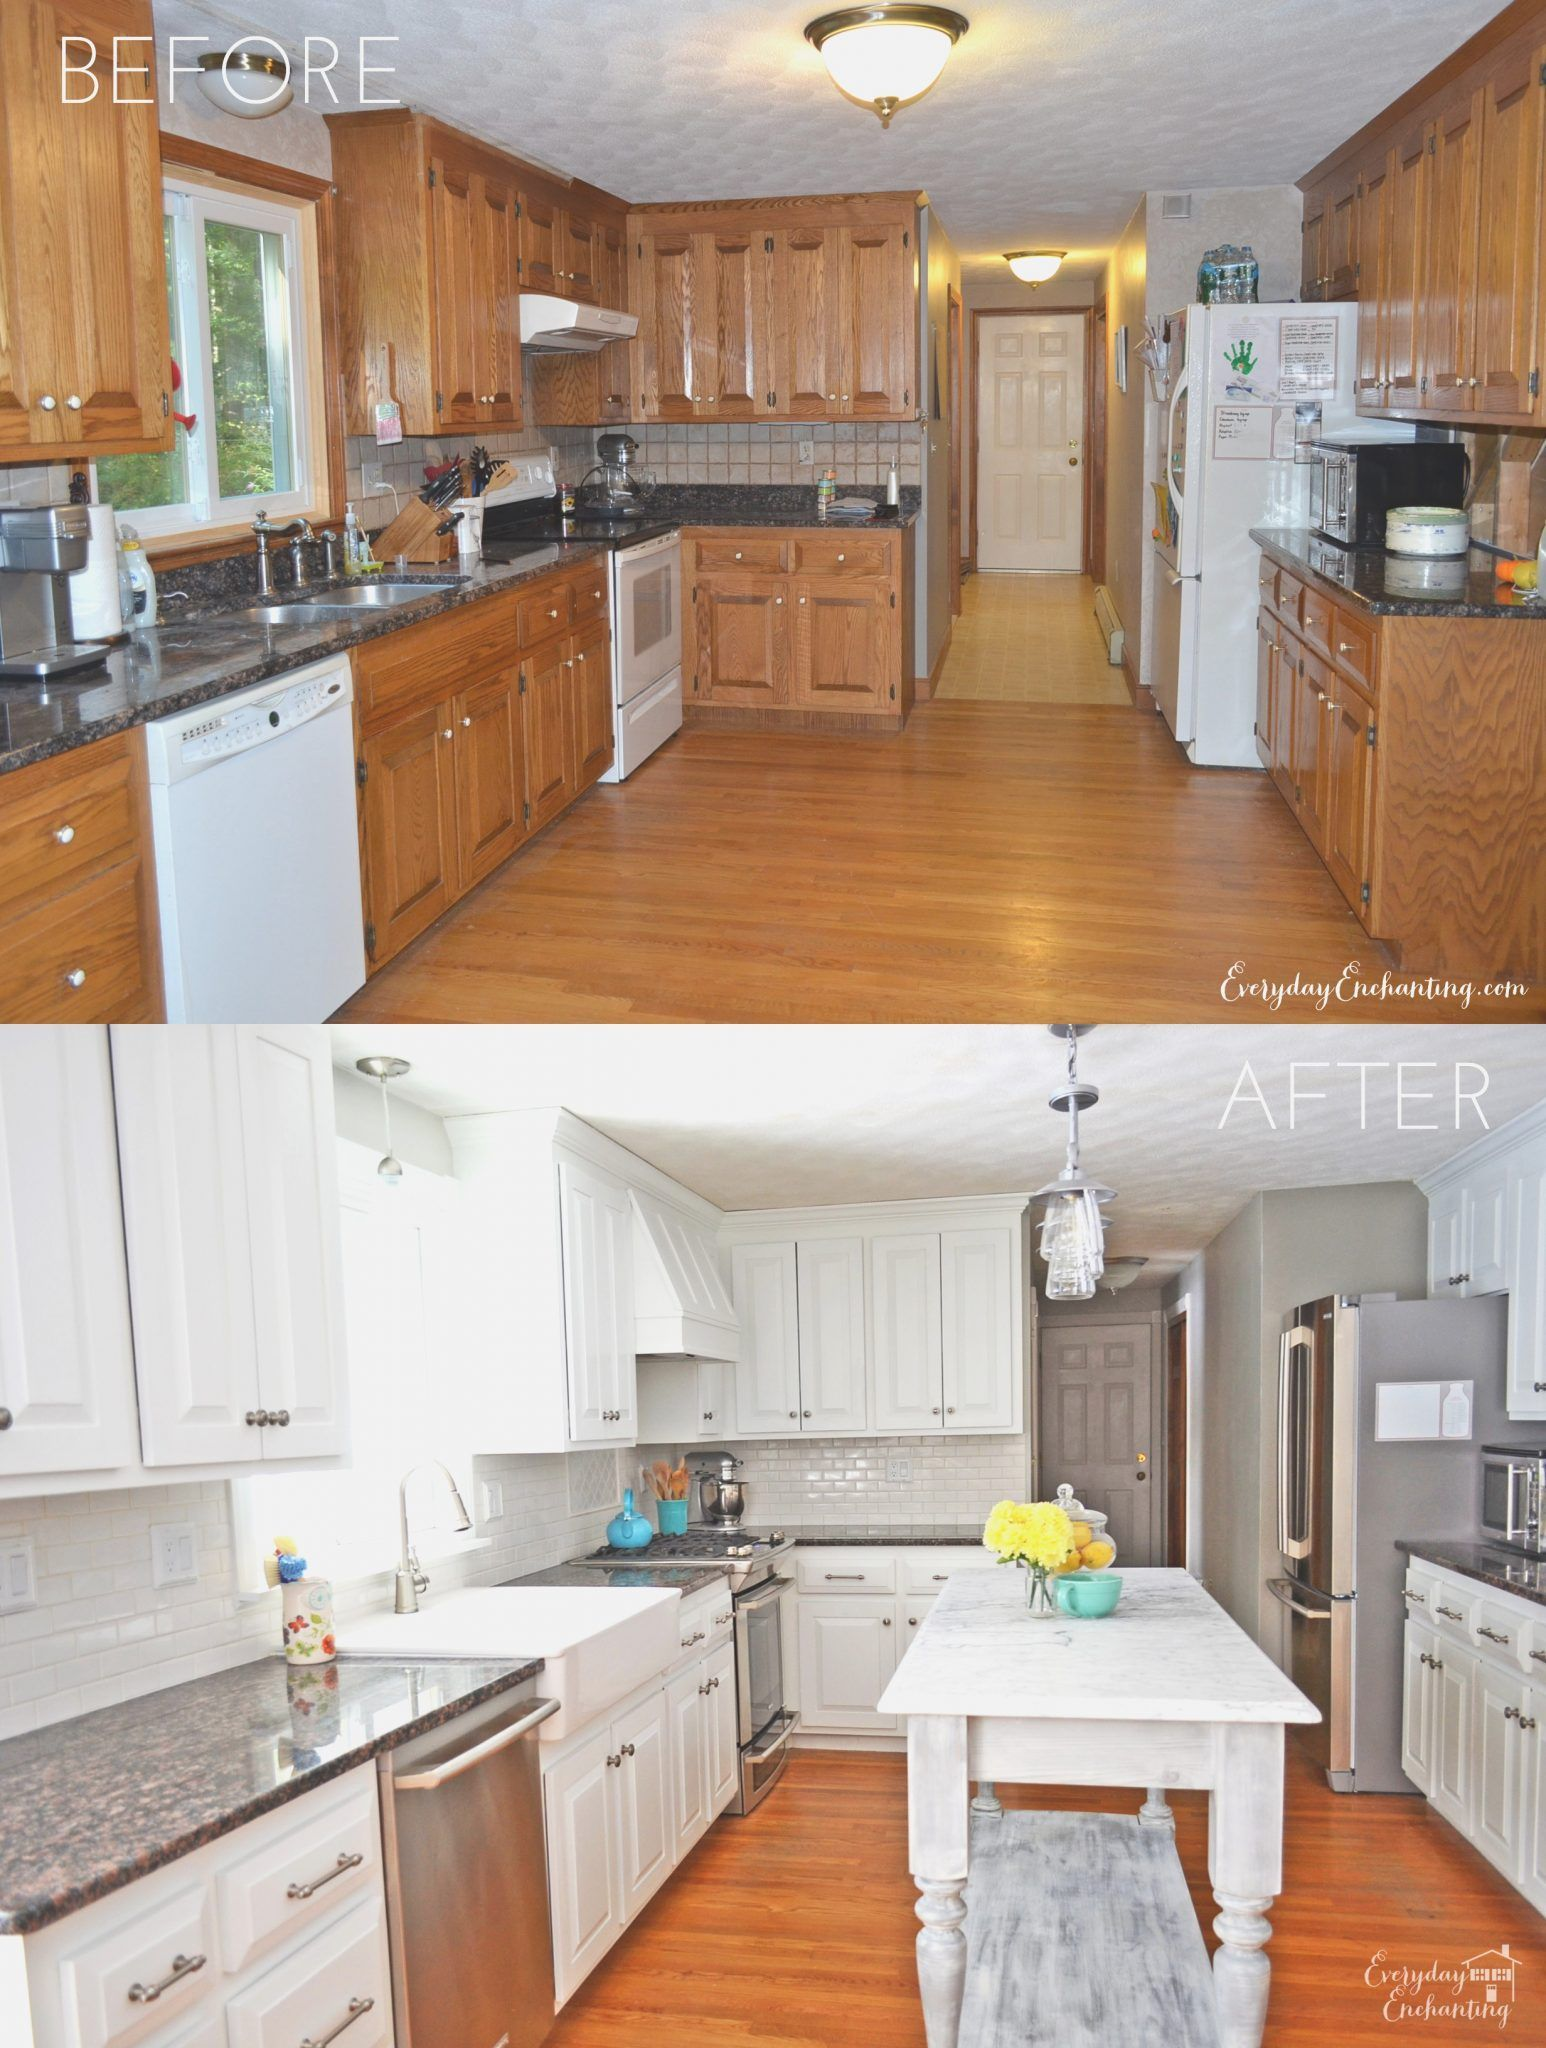 Do it yourself kitchen cabinets best do it yourself kitchen do it yourself kitchen cabinets best do it yourself kitchen cabinets do it yourself solutioingenieria Images